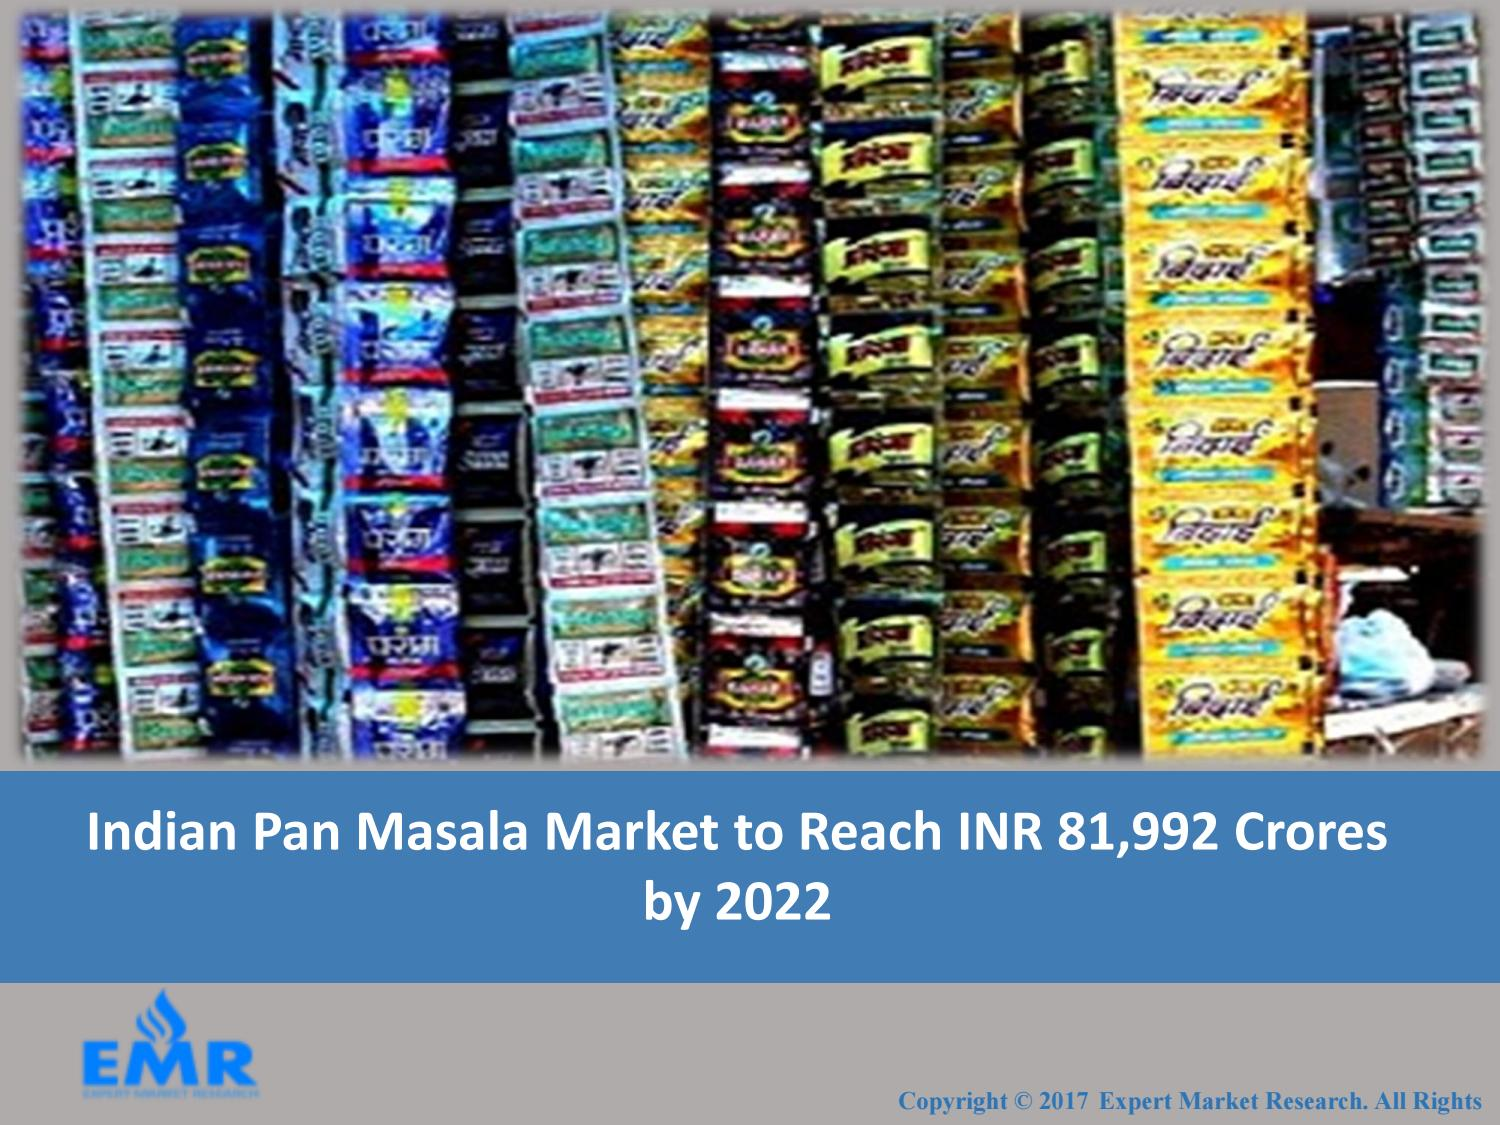 Indian Pan Masala Market Report, Trends and Forecasts 2017